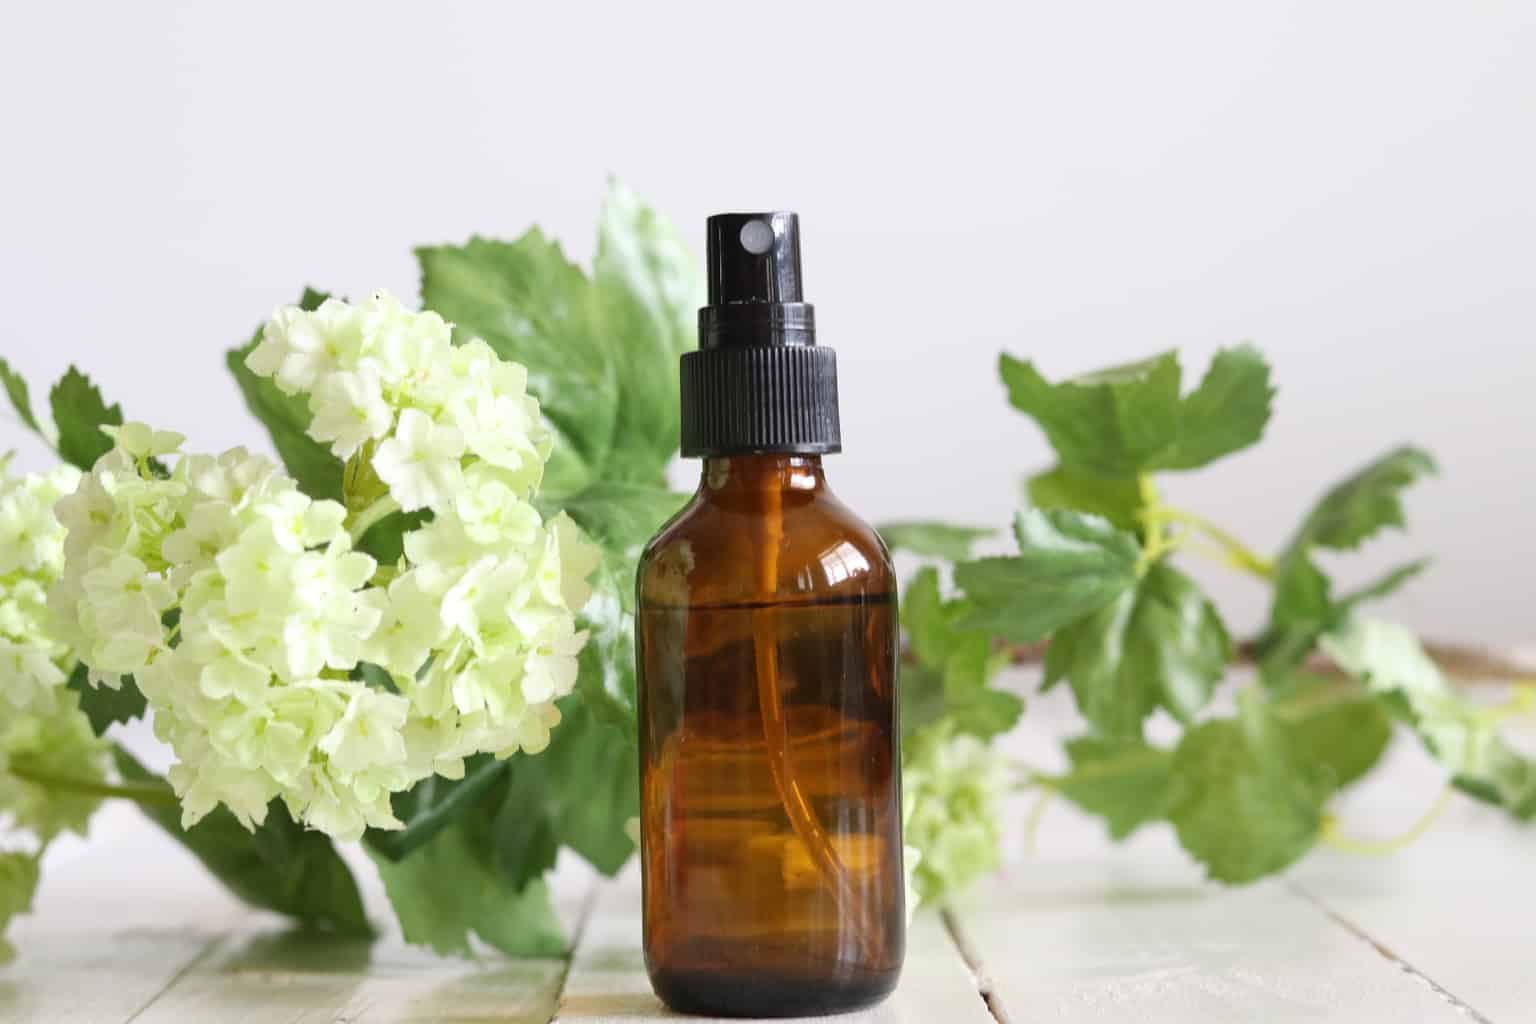 Learn how to make a simple essential oil room spray for spring with this simple DIY recipe.